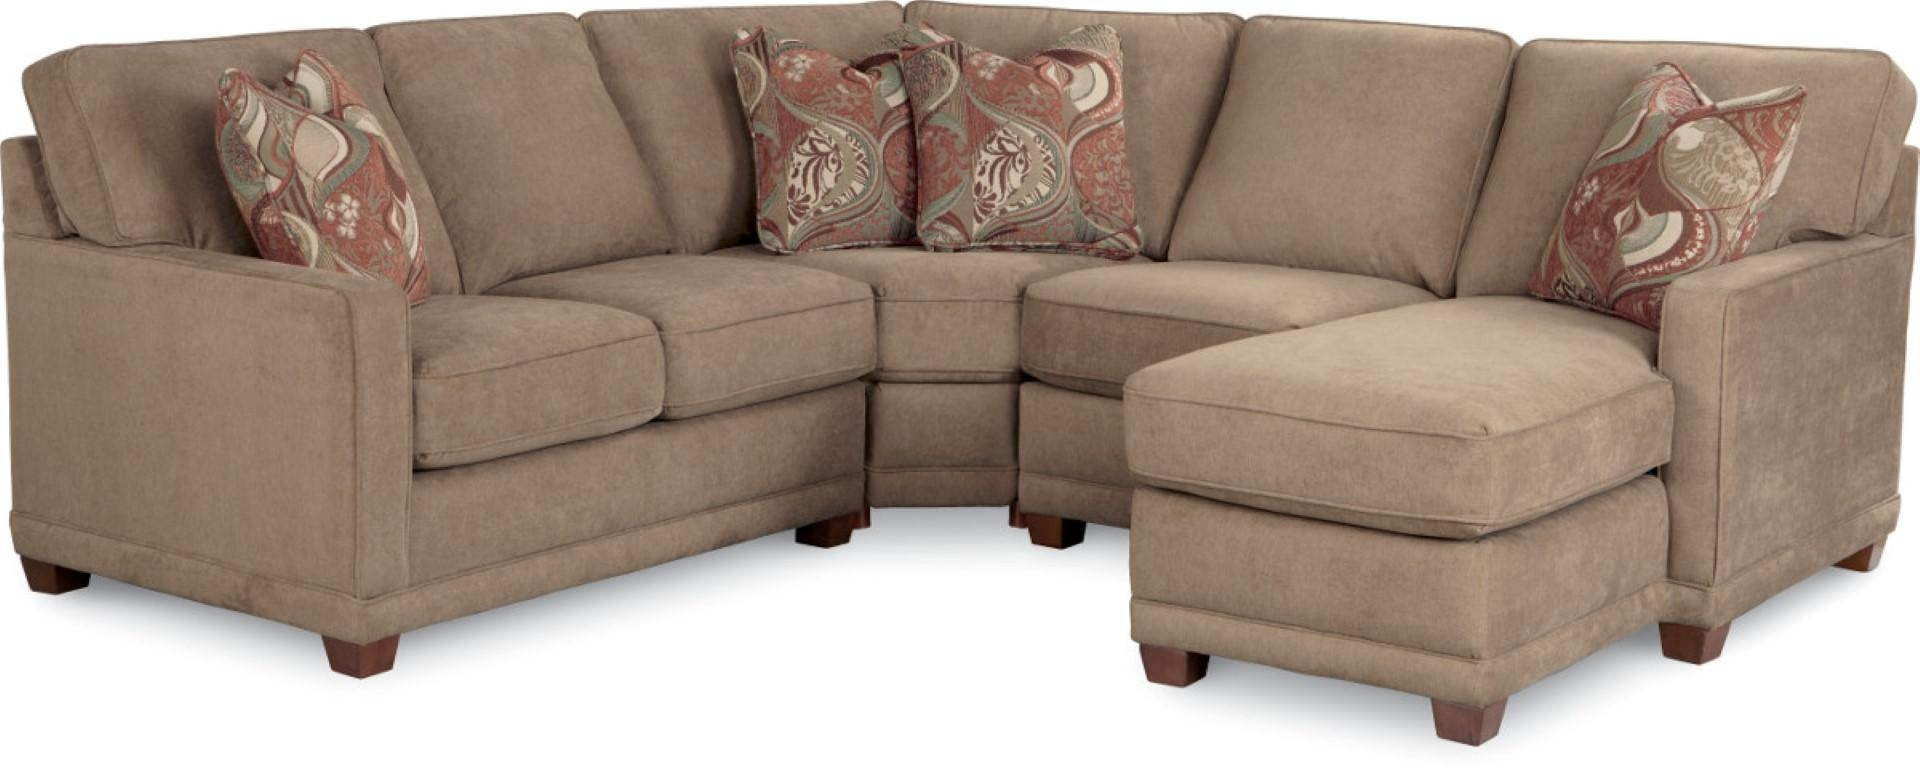 Furniture: Lazyboy Sectional With Cool Various Designs And Colors Regarding Lazyboy Sectional (Image 8 of 20)